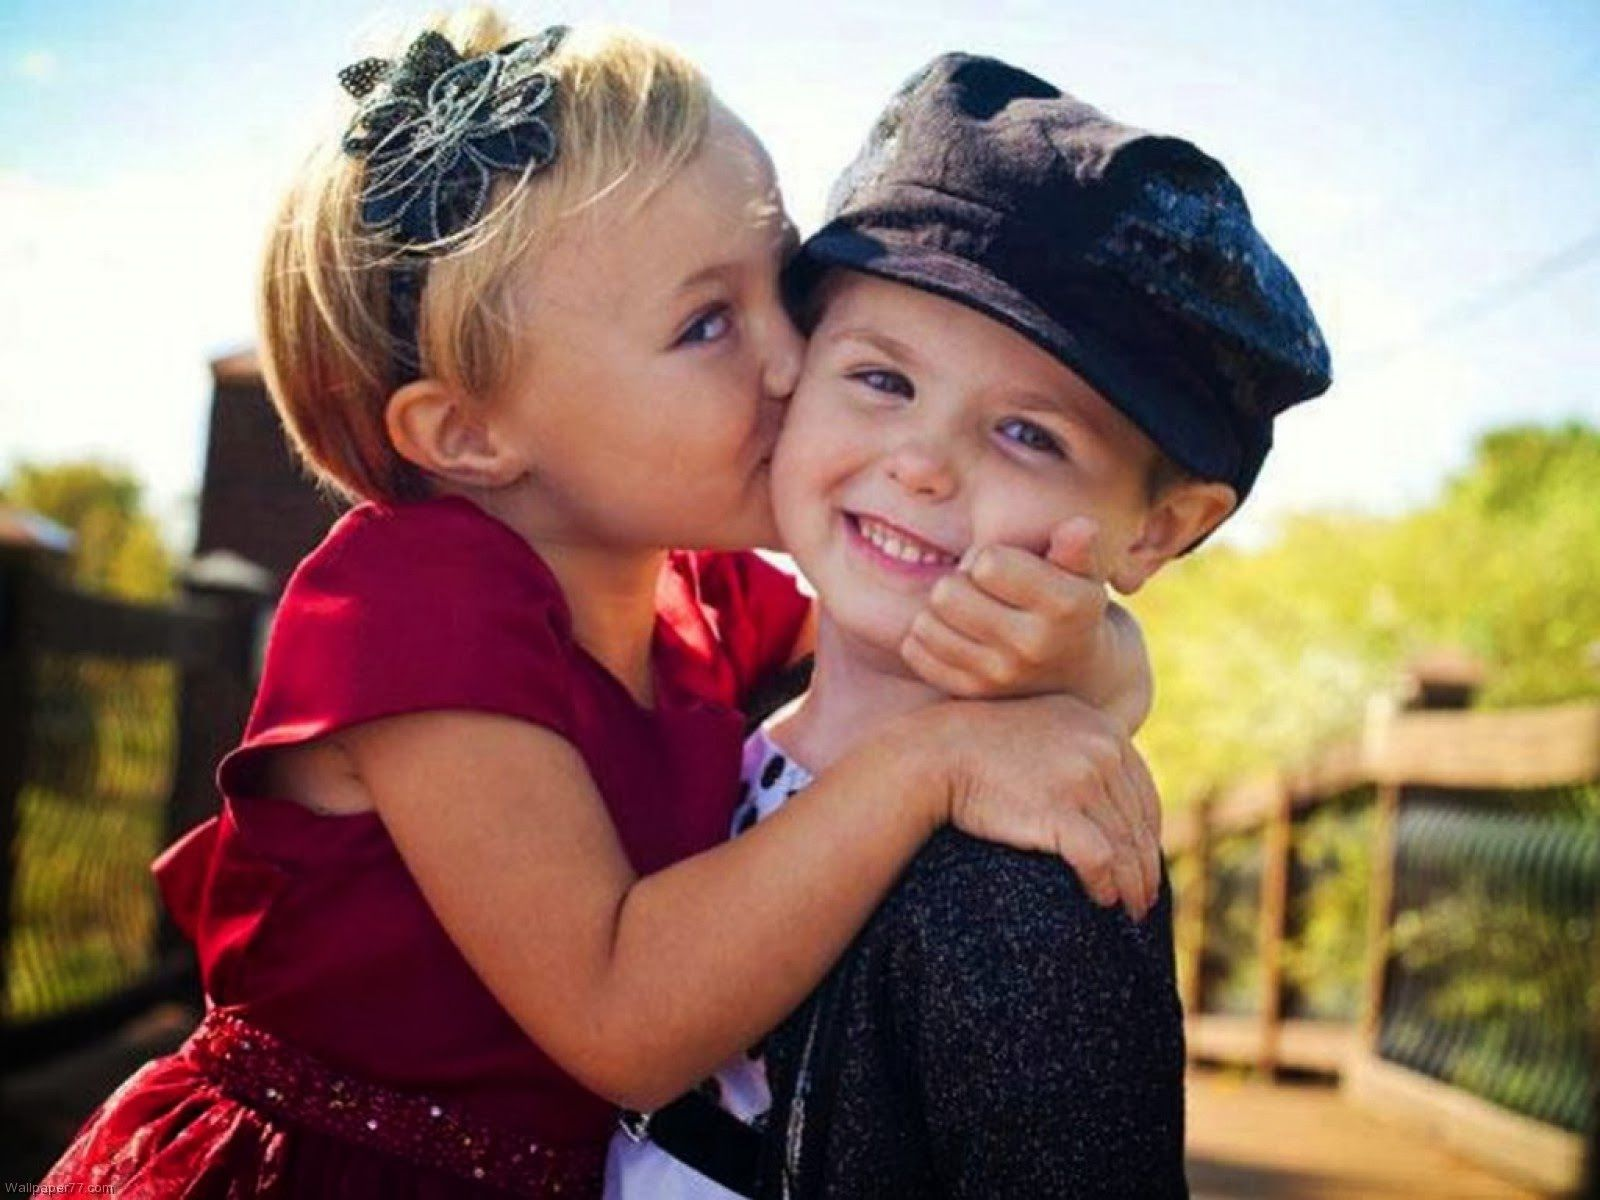 Full Hd Cute Baby Kiss Images Download Wallpapers Android Kids